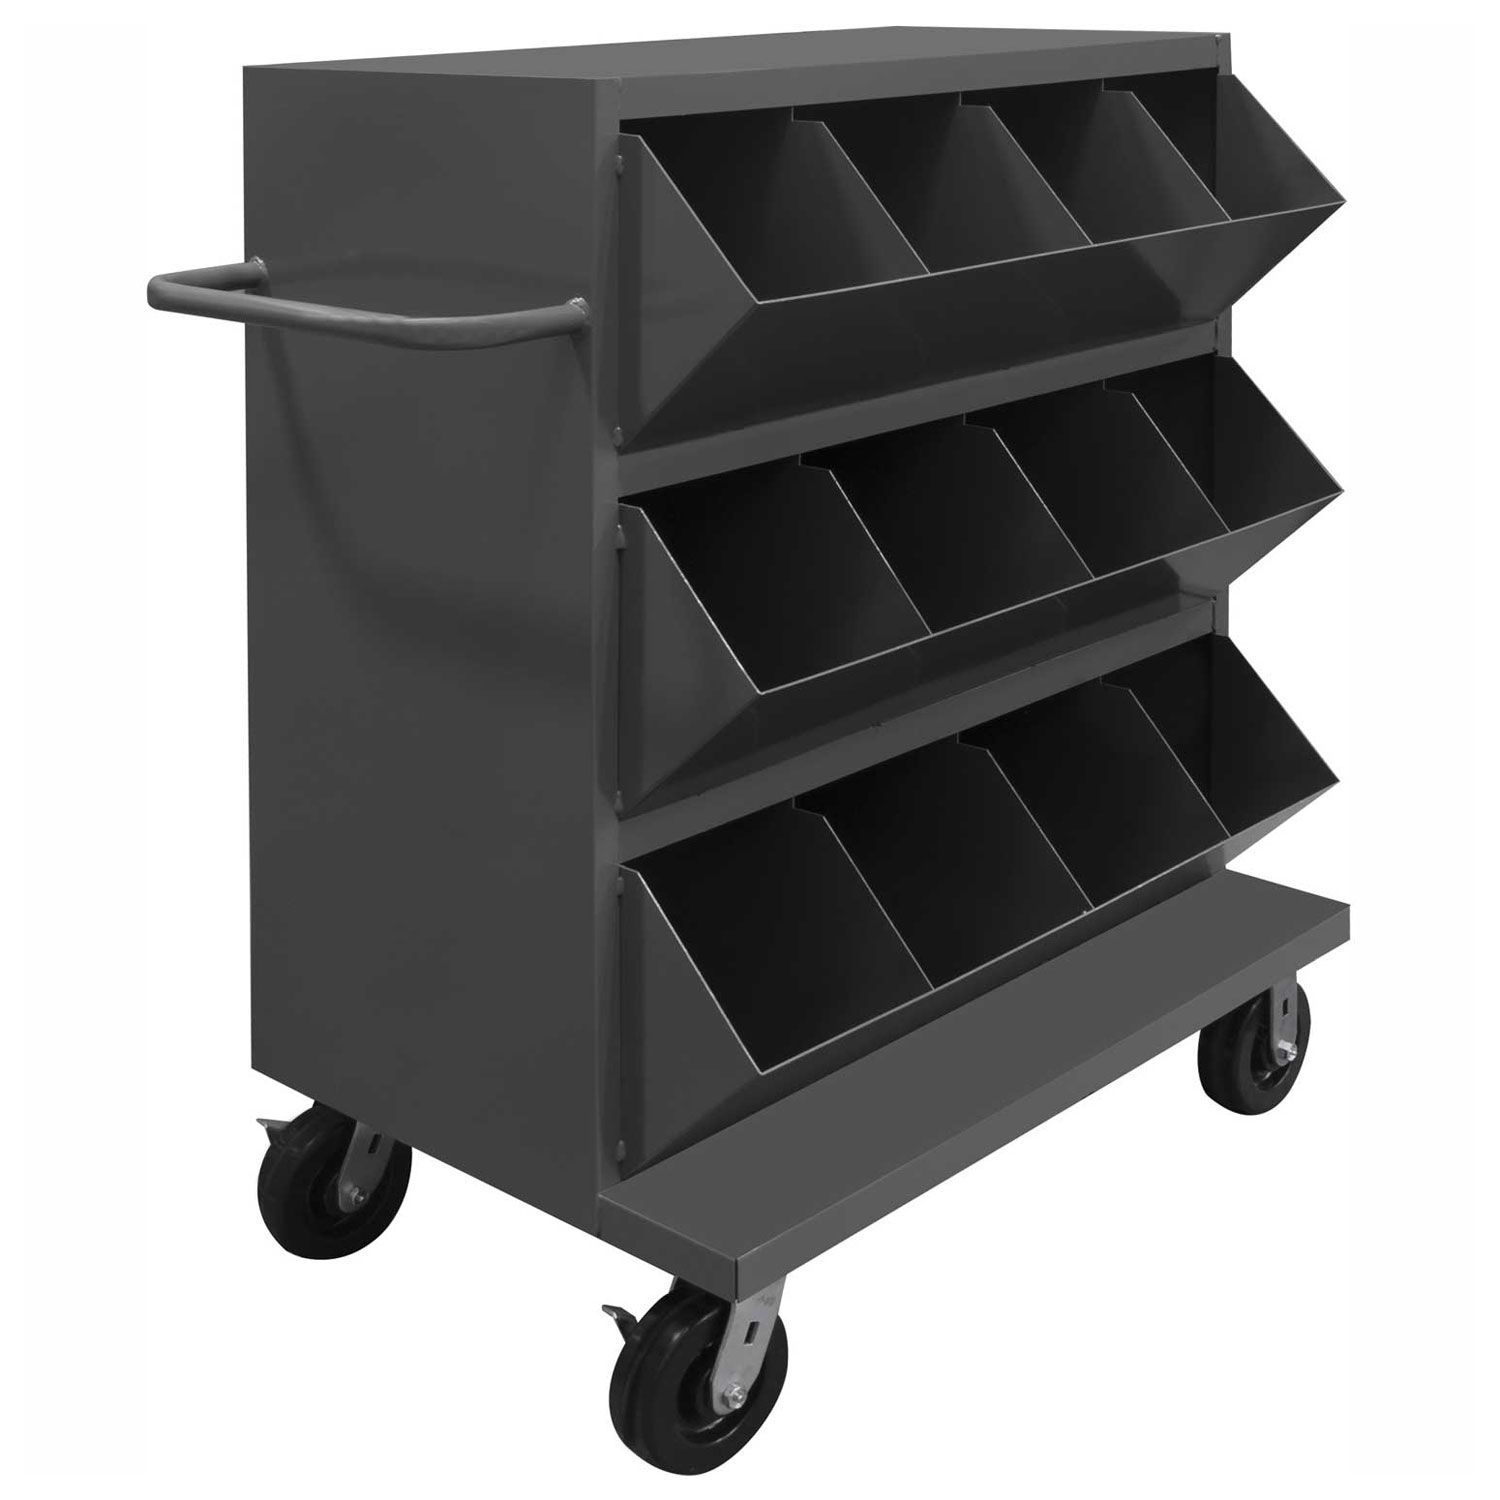 Bins Totes Containers Bins Racks Wall Panels Durham Heavy Duty Steel Mobile Storage Bin Msb12 2036 95 12 Mobile Storage Storage Shelves Storage Cart